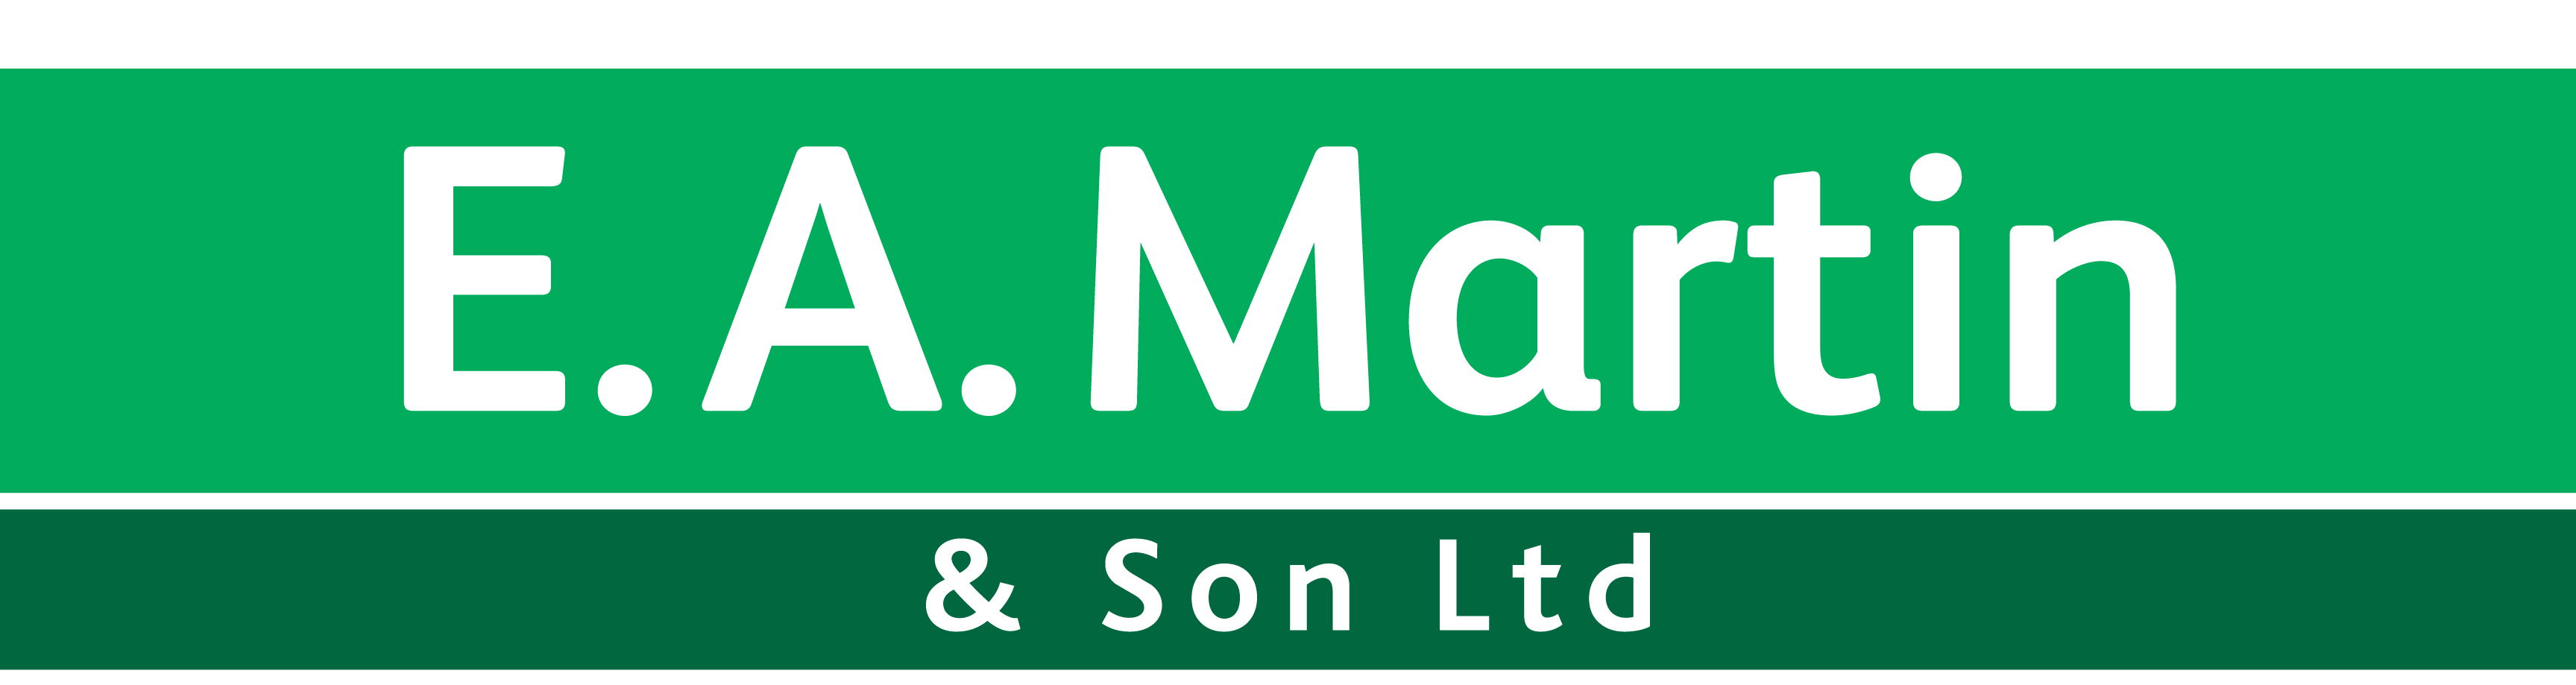 EA Martin & Son Ltd